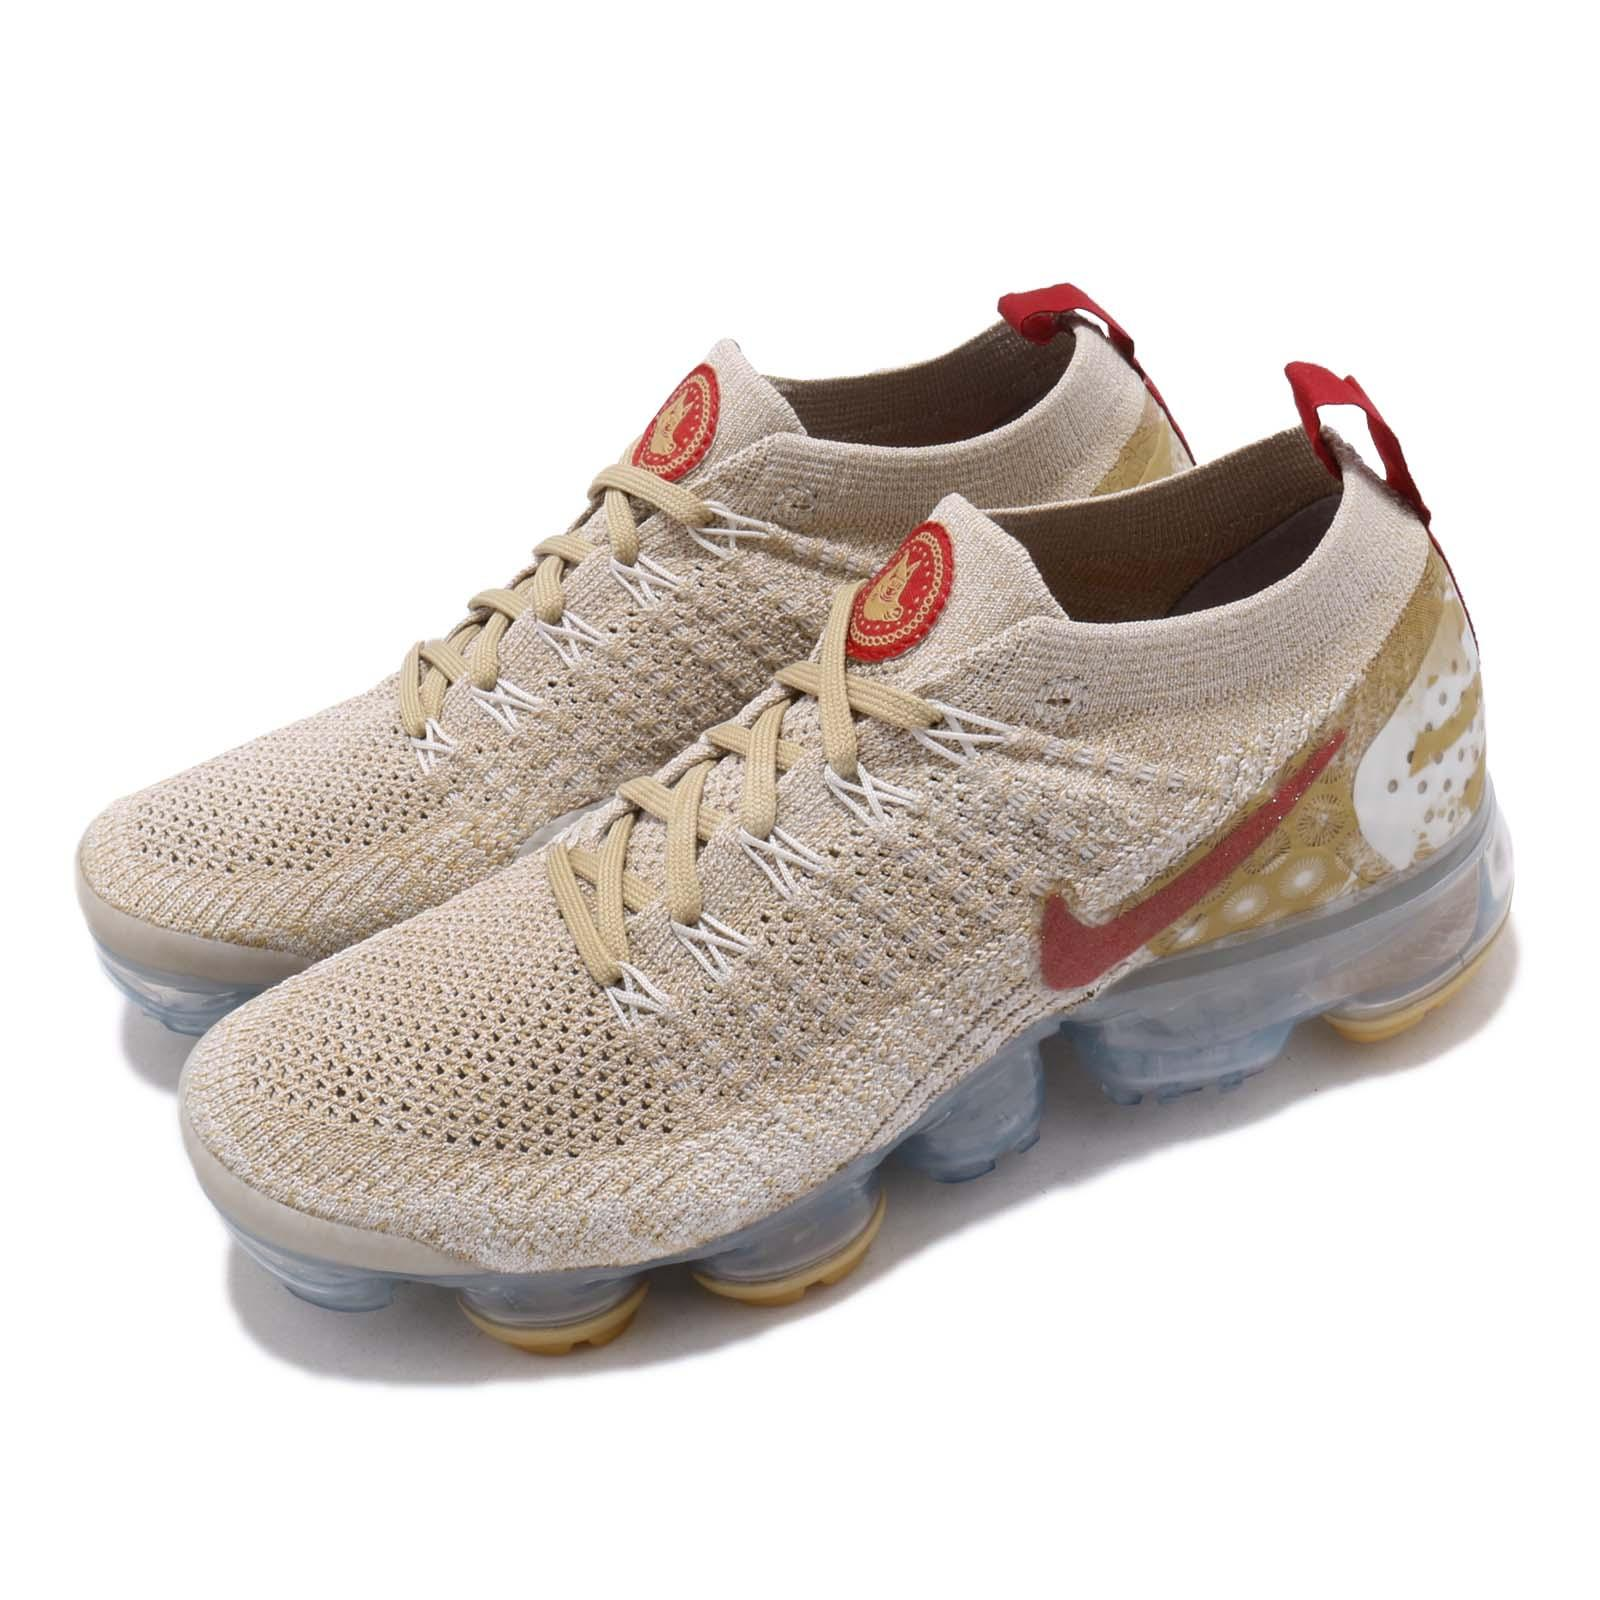 Details about Nike Wmns Air Vapormax Fk 2 Flyknit CNY Chinese New Year Women Shoes BQ7037 001